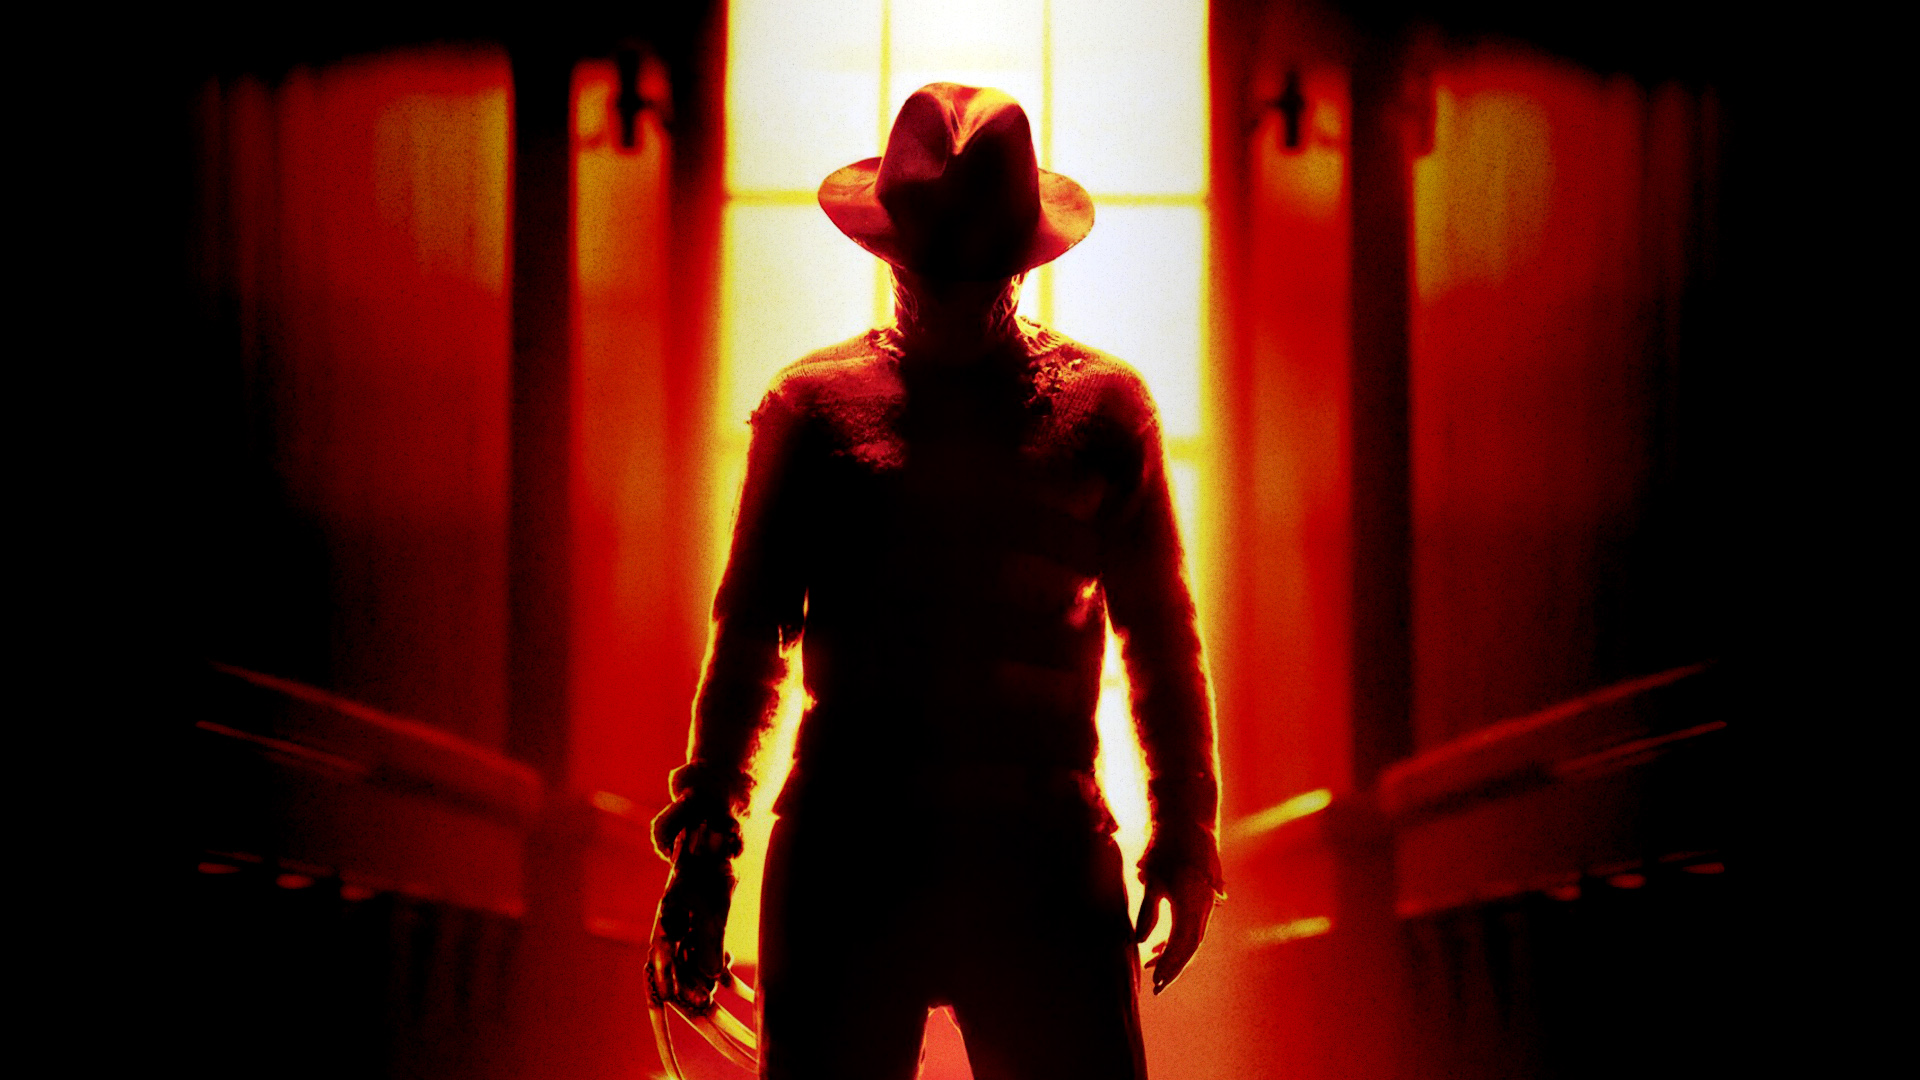 freddy krueger desktop wallpaper 54433